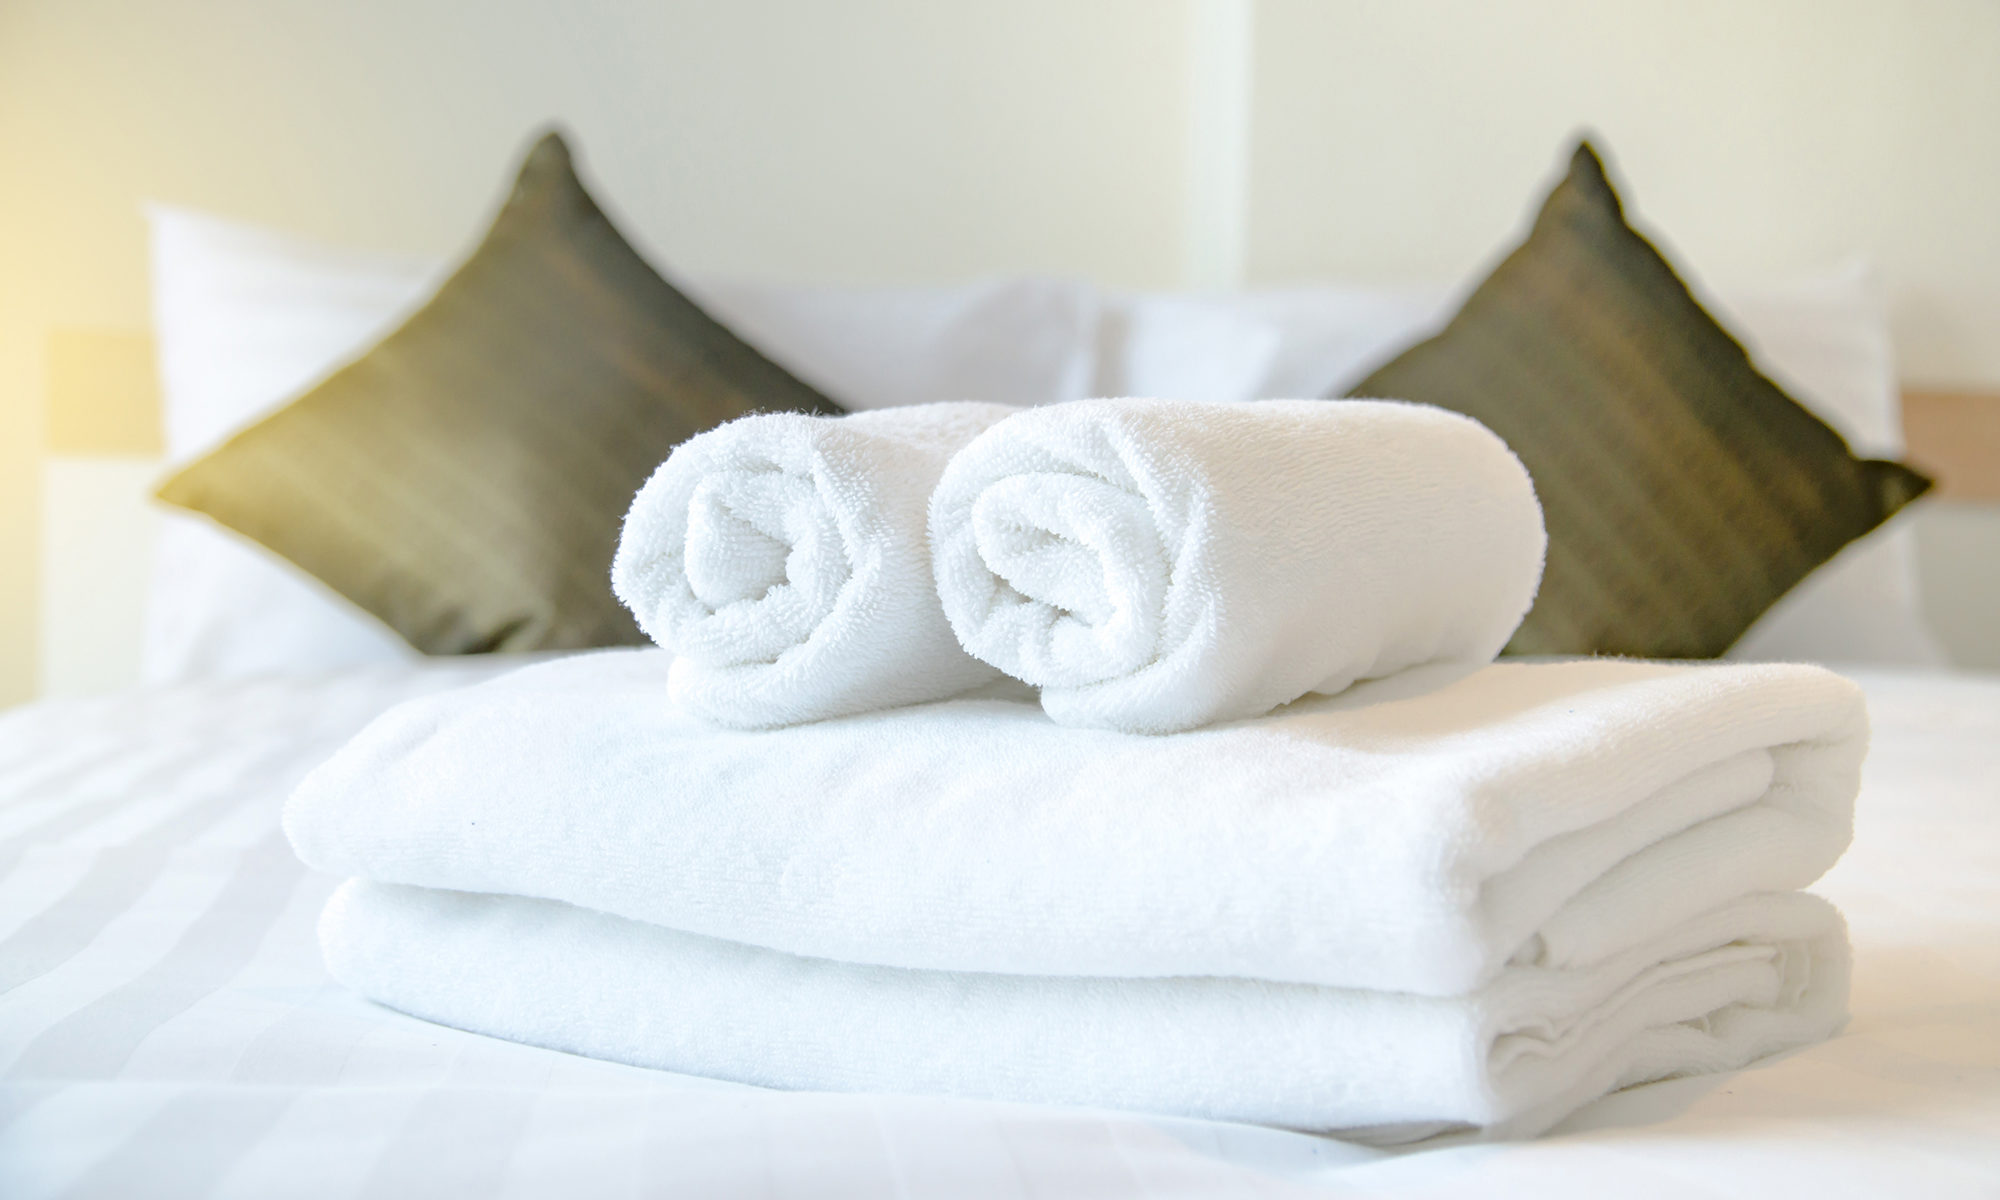 Towels in hotel room